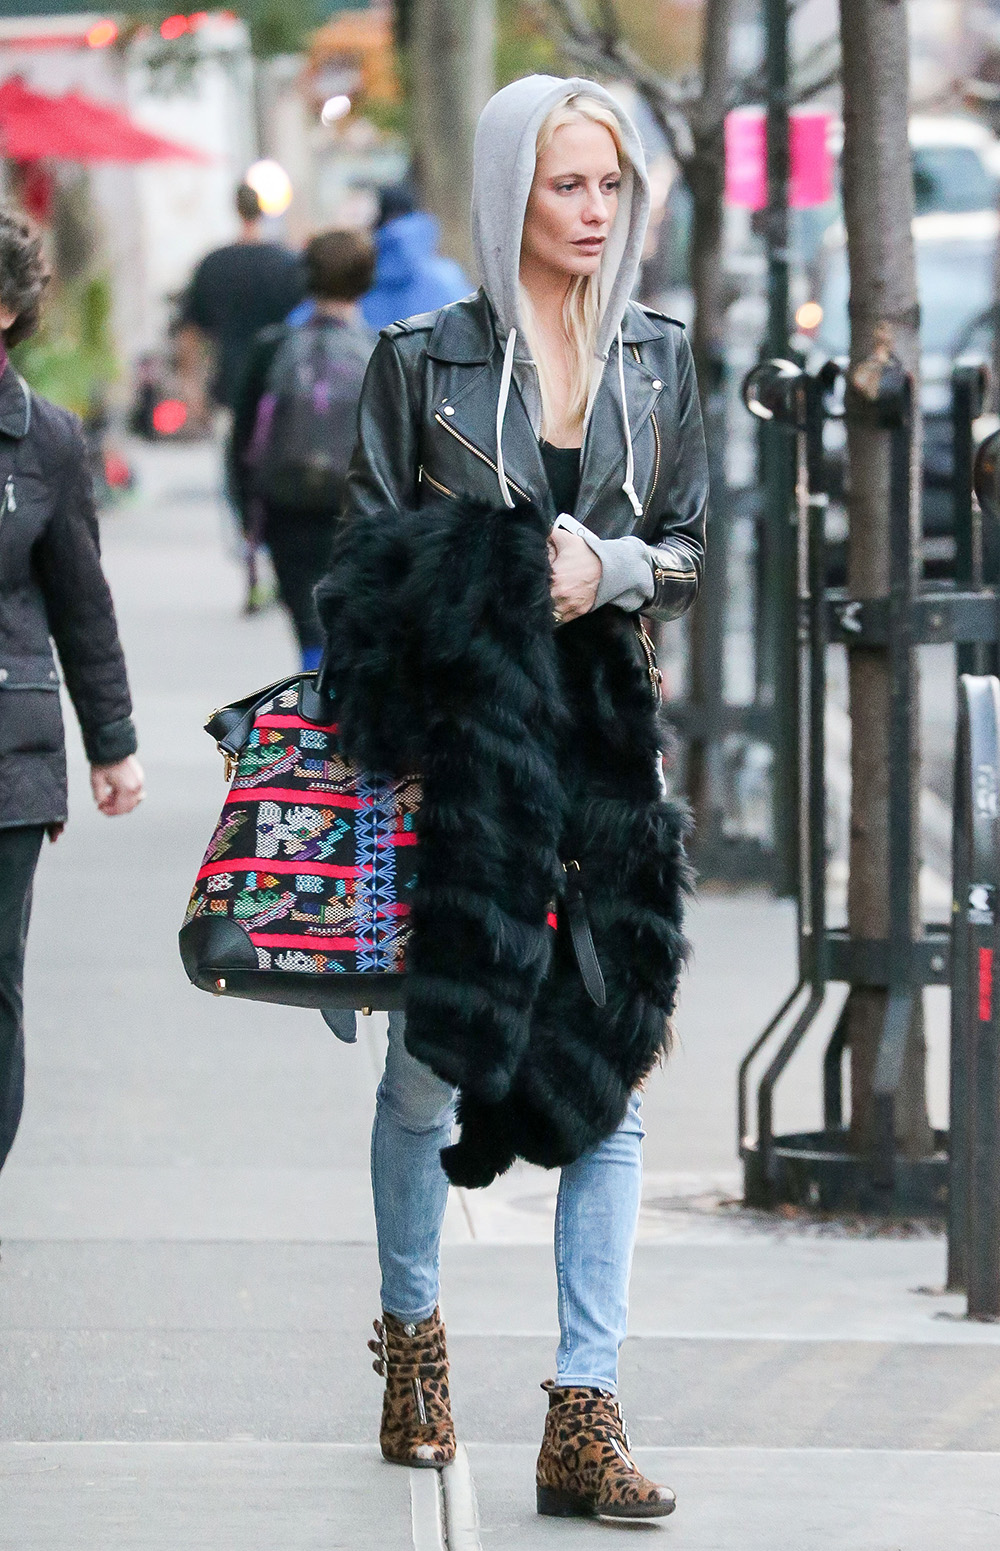 Exclusive... Poppy Delevingne Takes A Stroll Through NYC